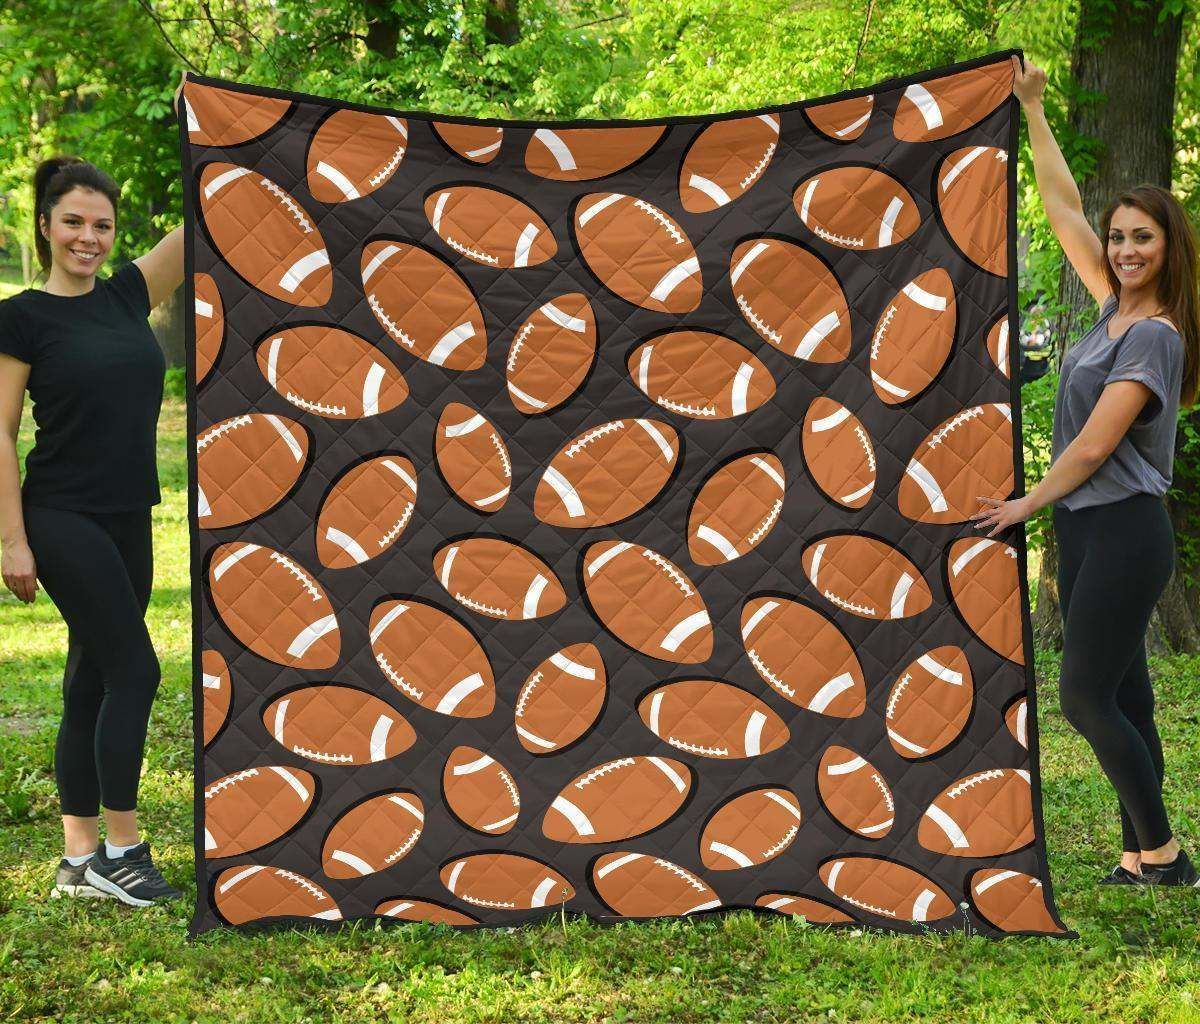 rugby ball american football hur17945 3d customized quilt camli2307 0